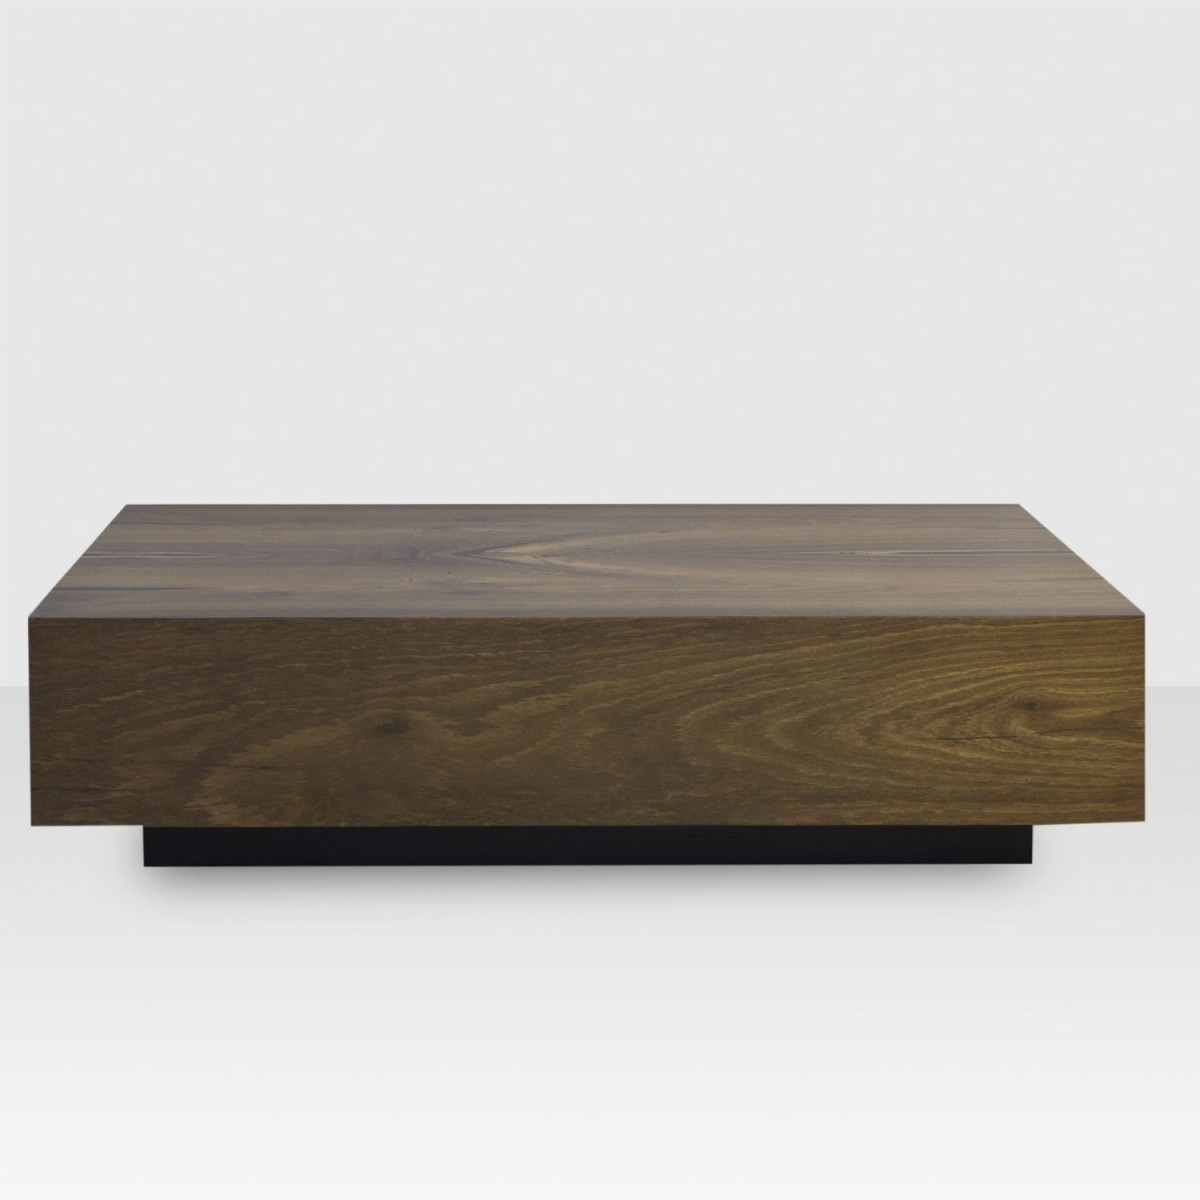 Element Coffee Table - Elte with regard to Element Coffee Tables (Image 18 of 30)